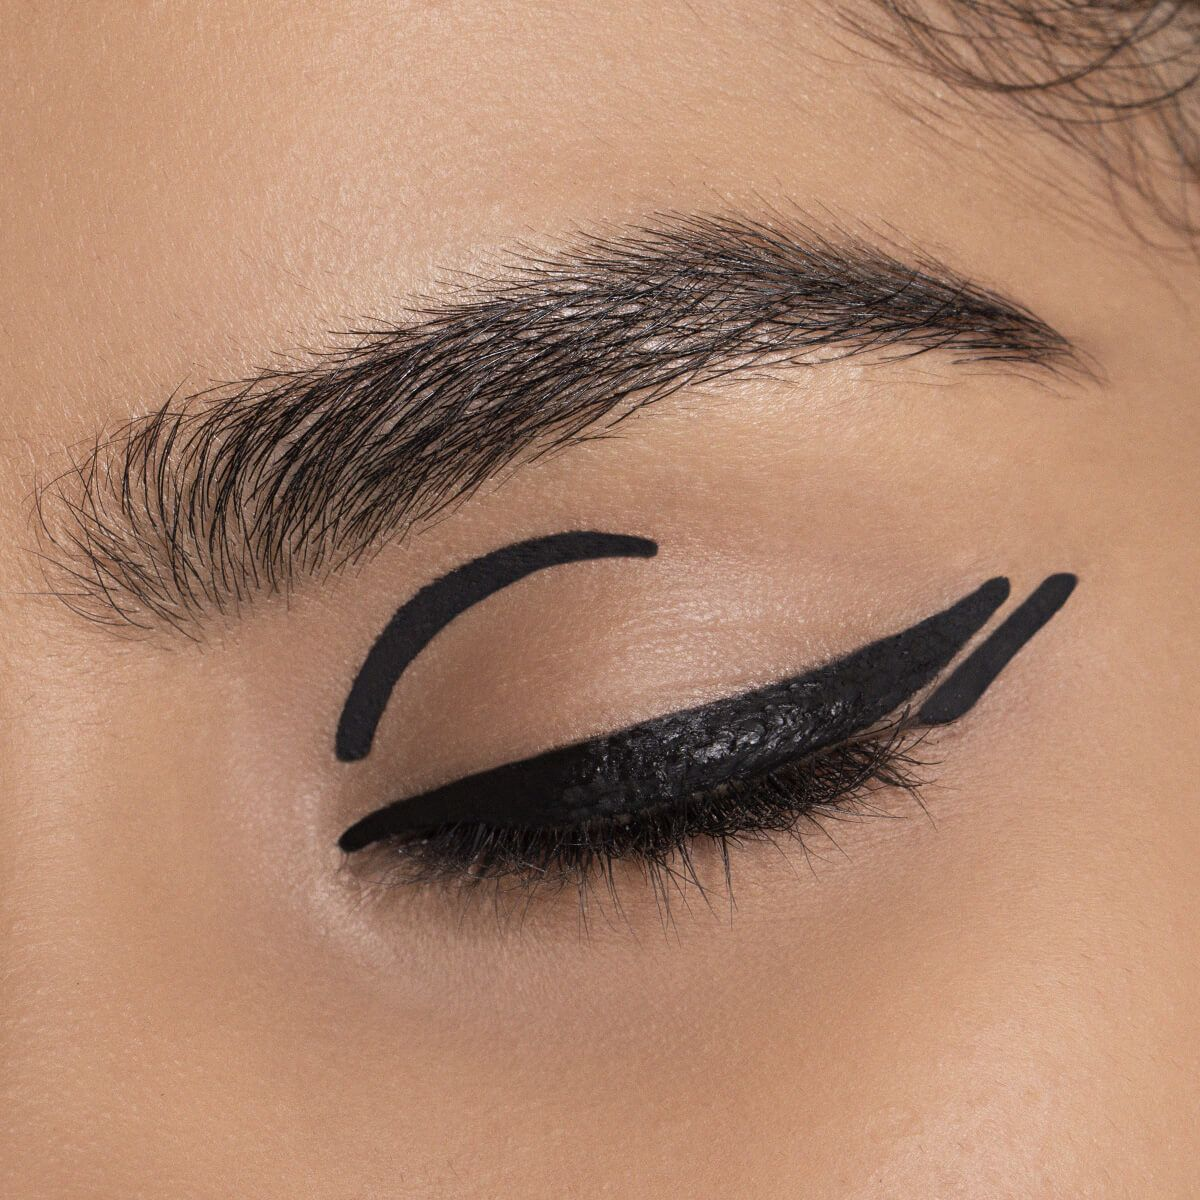 GRAPHIC: DOUBLE DOWN MAKEUP TREND